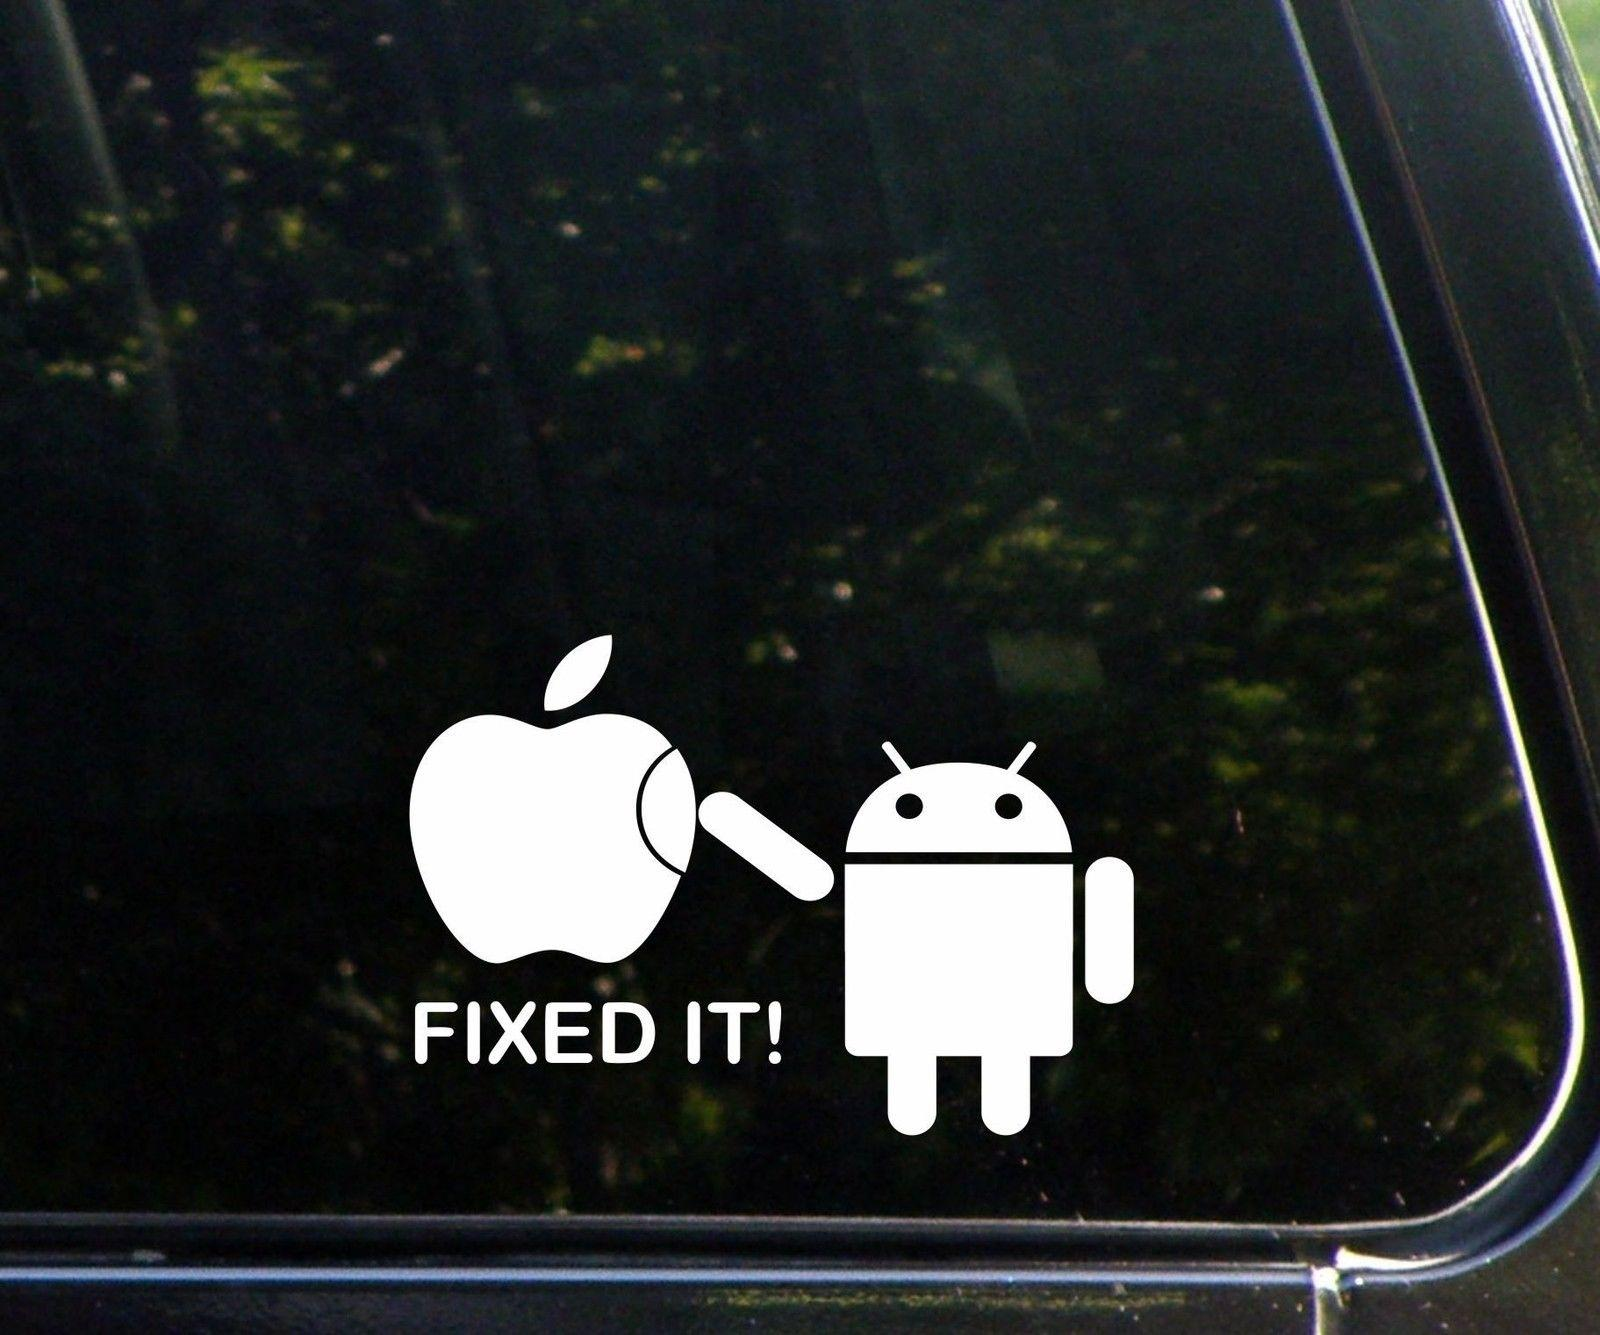 2019 android fixed it funny car window wall decal sticker apple from mysticker 4 36 dhgate com